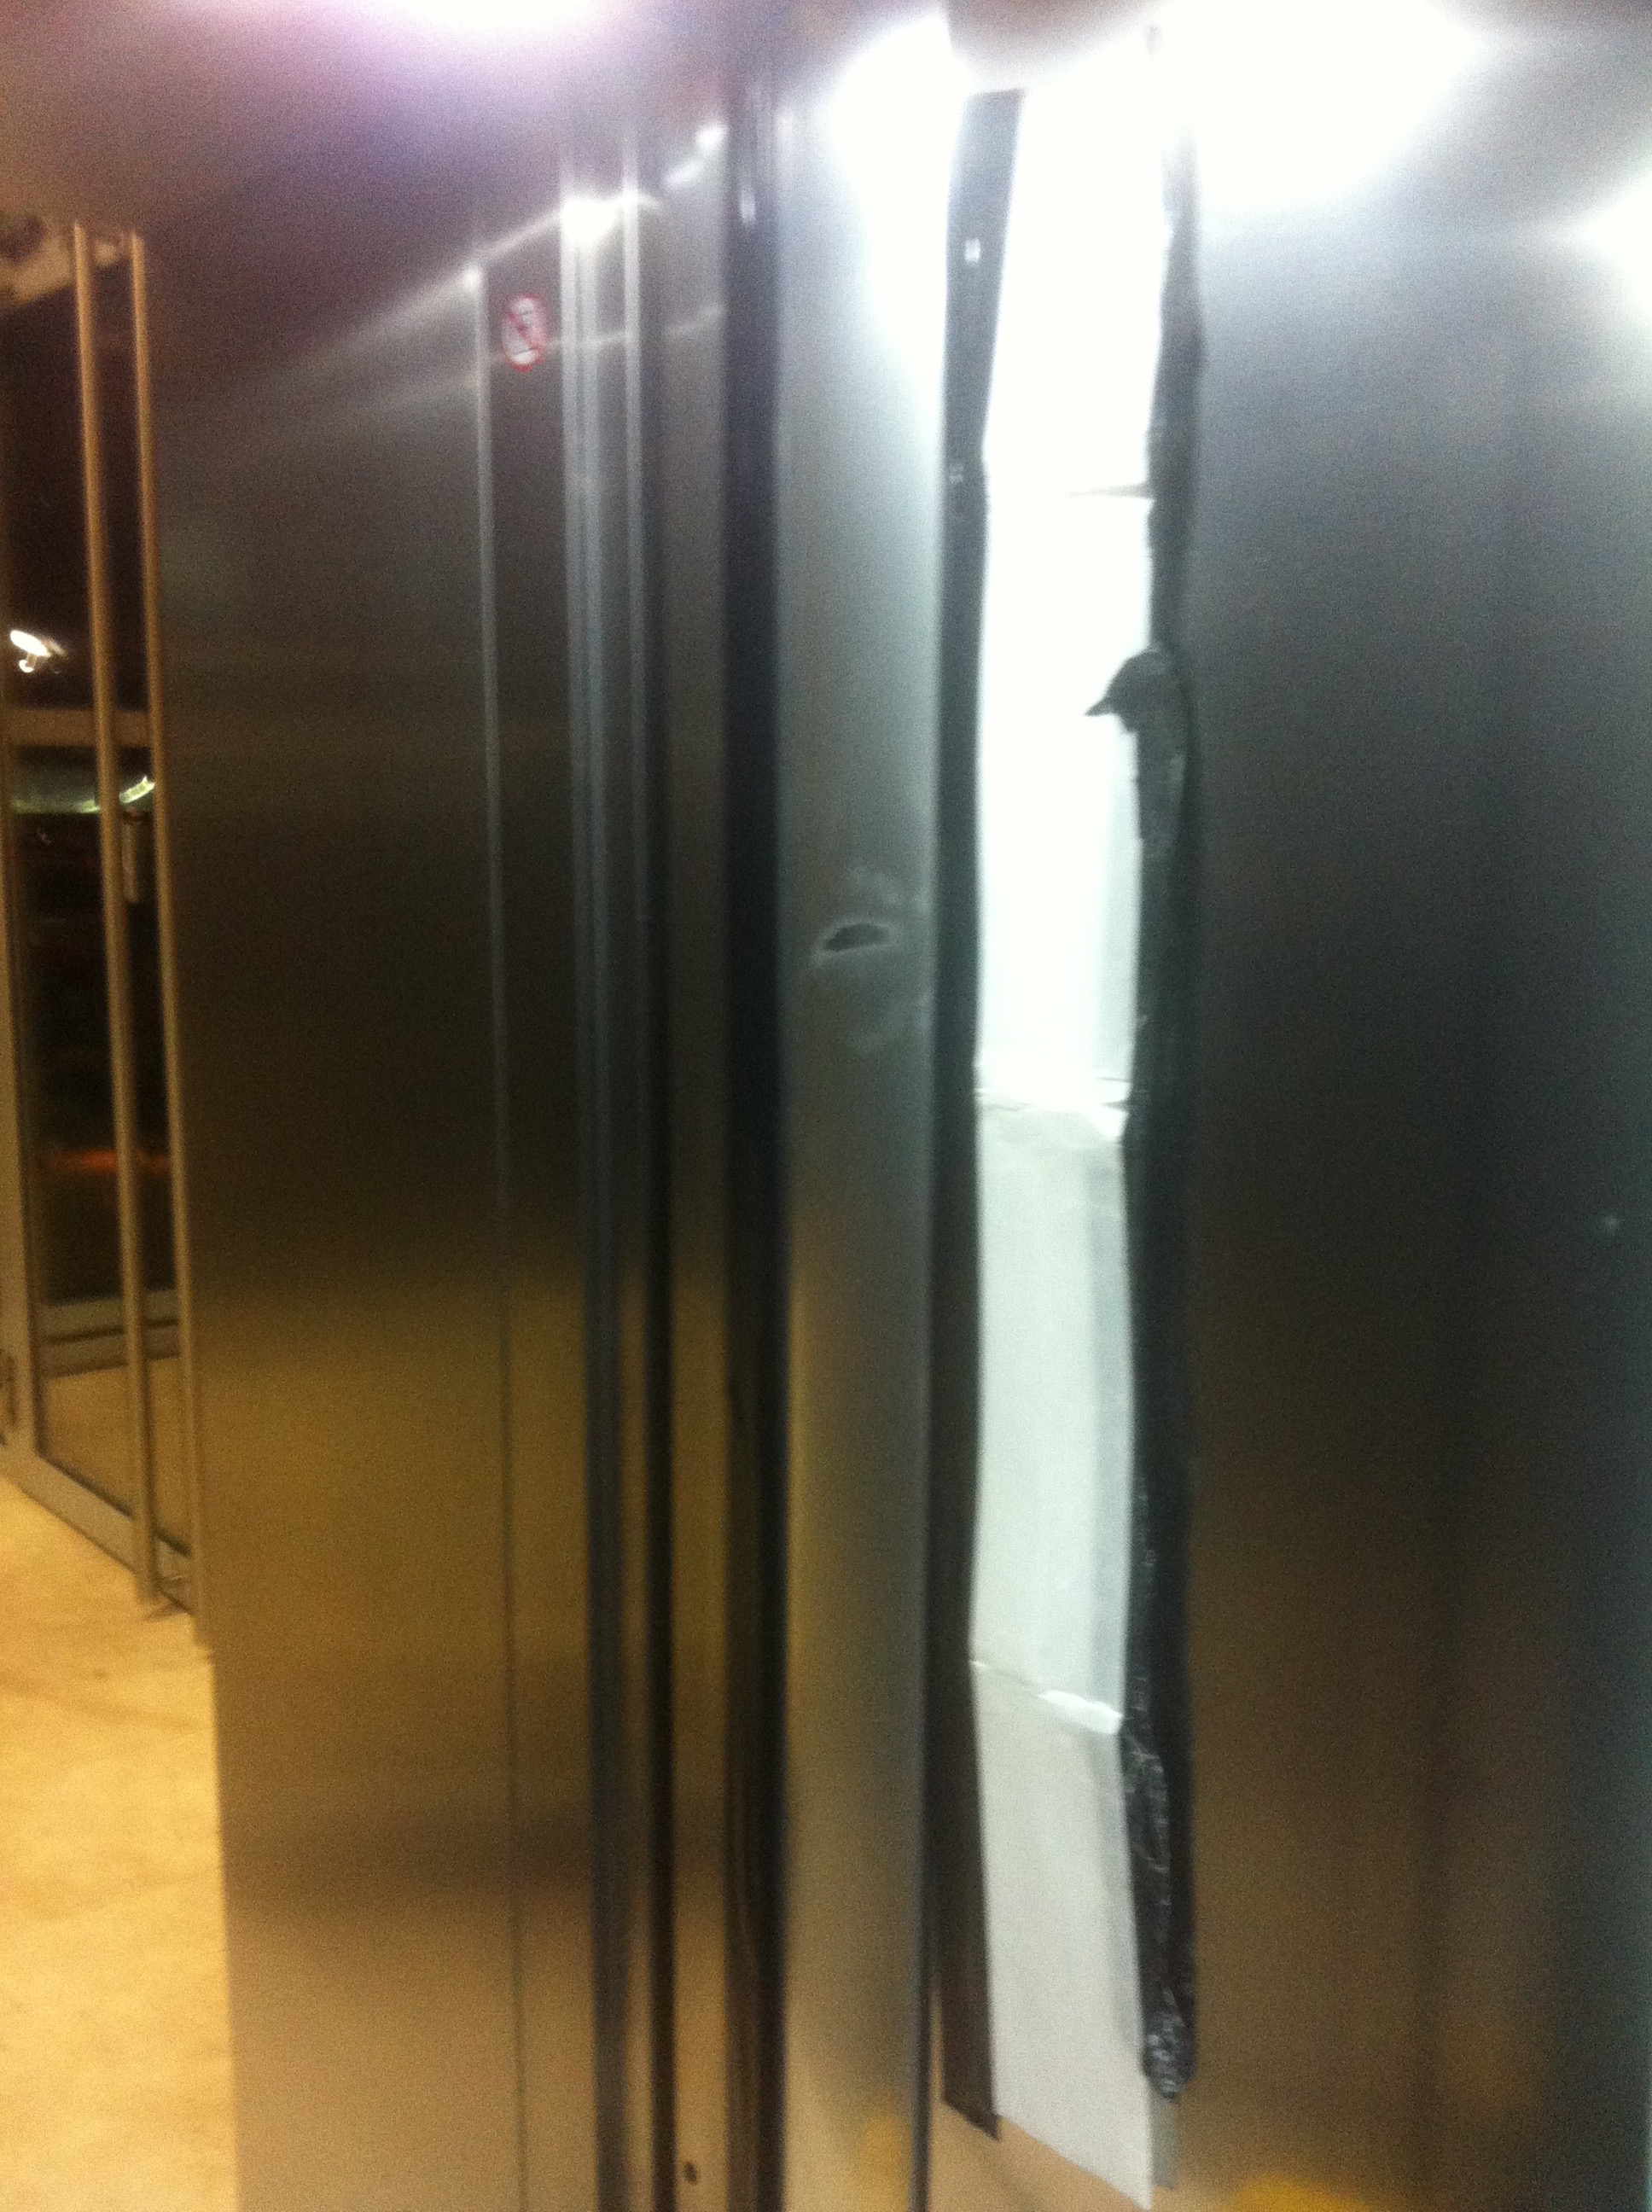 Damaged lift- During